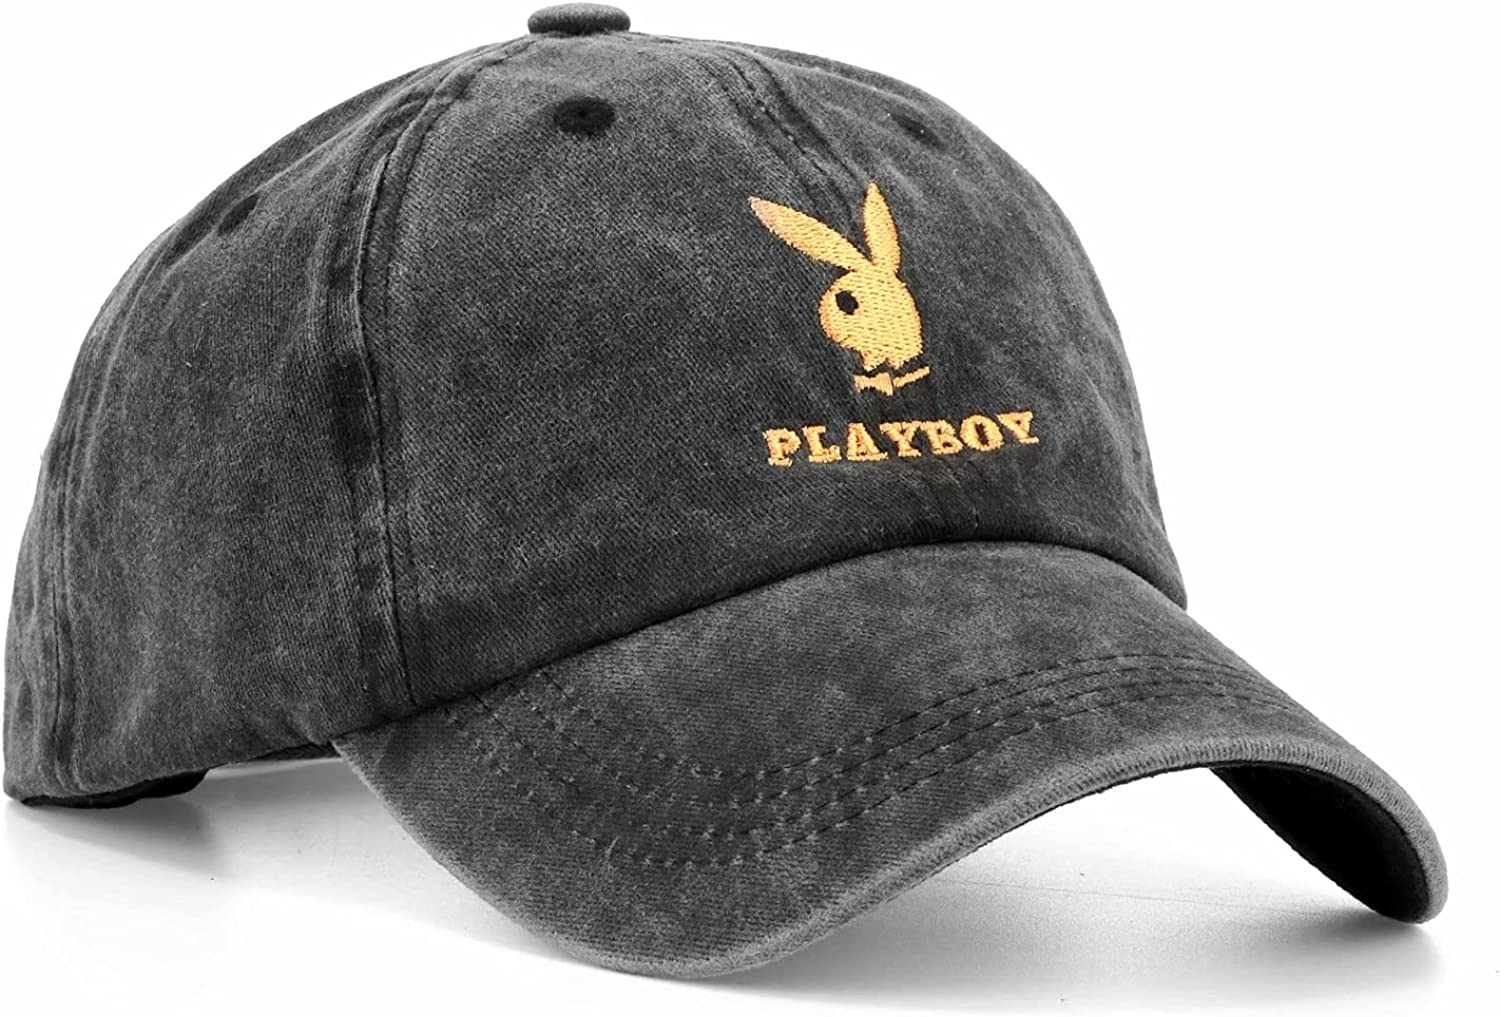 Bunny Hat Embroidered Cowboy Baseball Cap, Classic Snapback Hat for Men Women Outdoor Driver's Hat